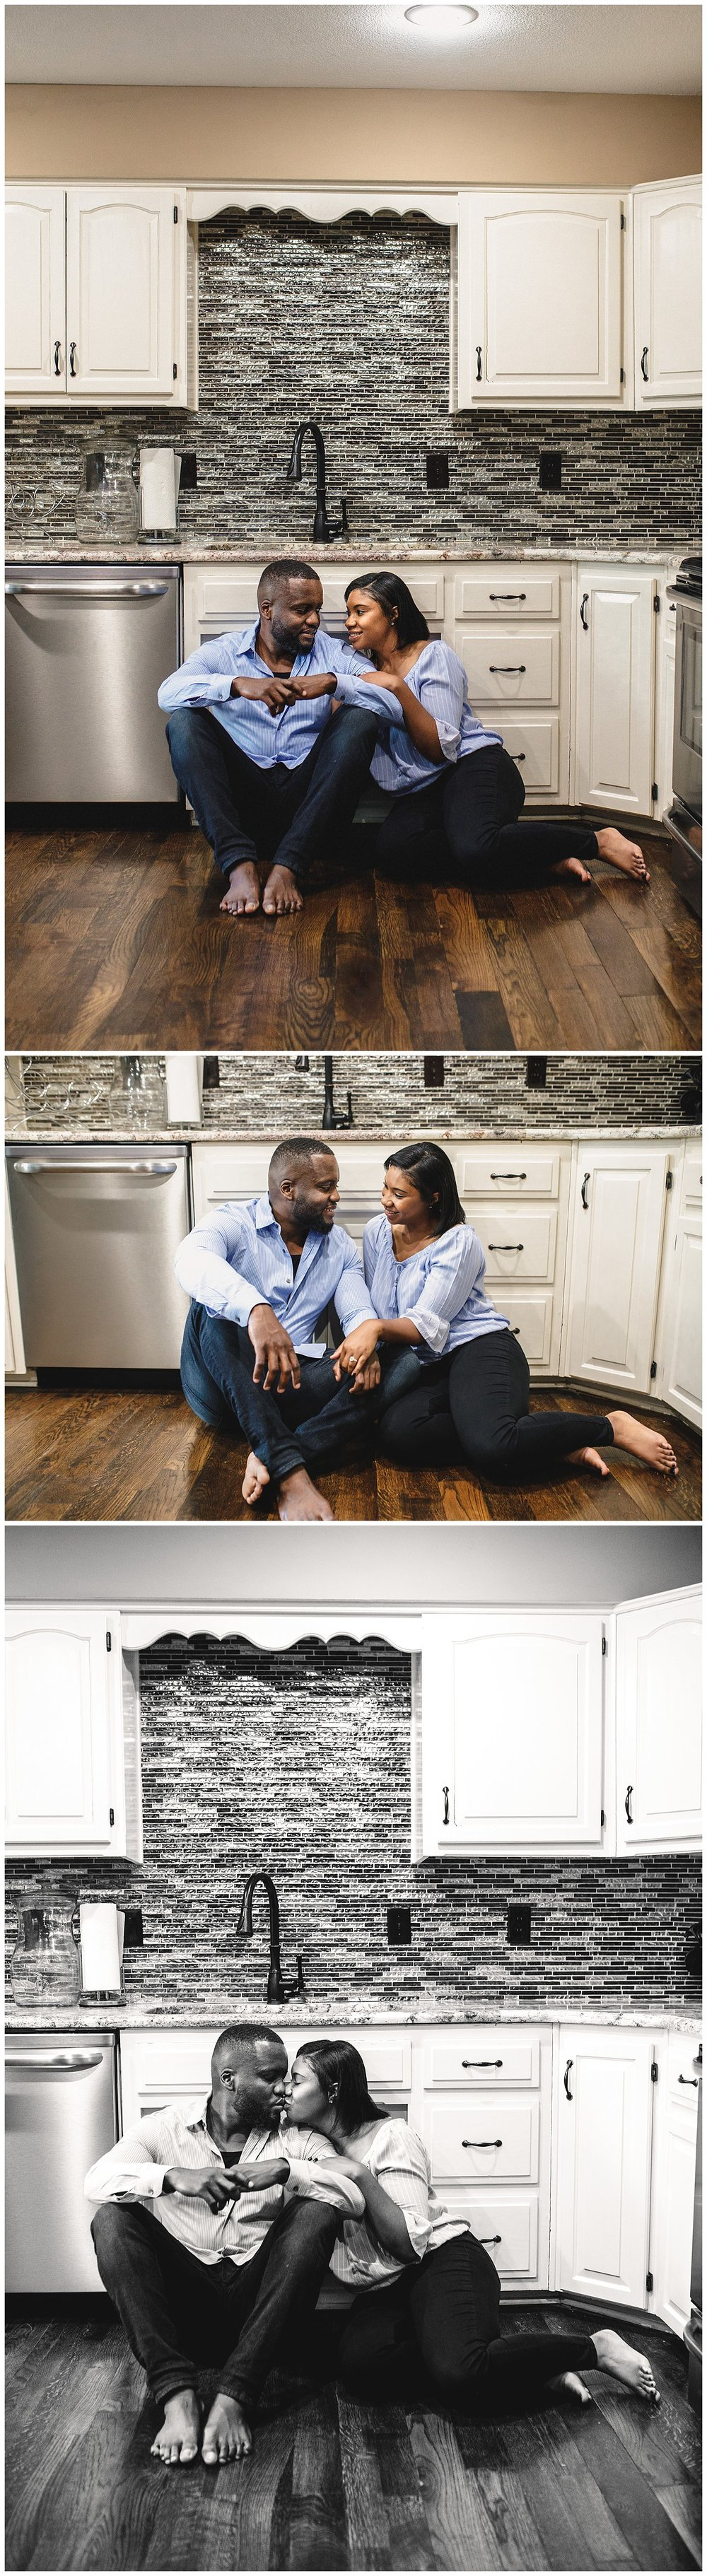 Kansas_City_Engagment_In_Home_Session_Kelsey_Diane_Photography_Wedding_Photographer_Engagment_Photographer_0112_Bri_Prime.jpg